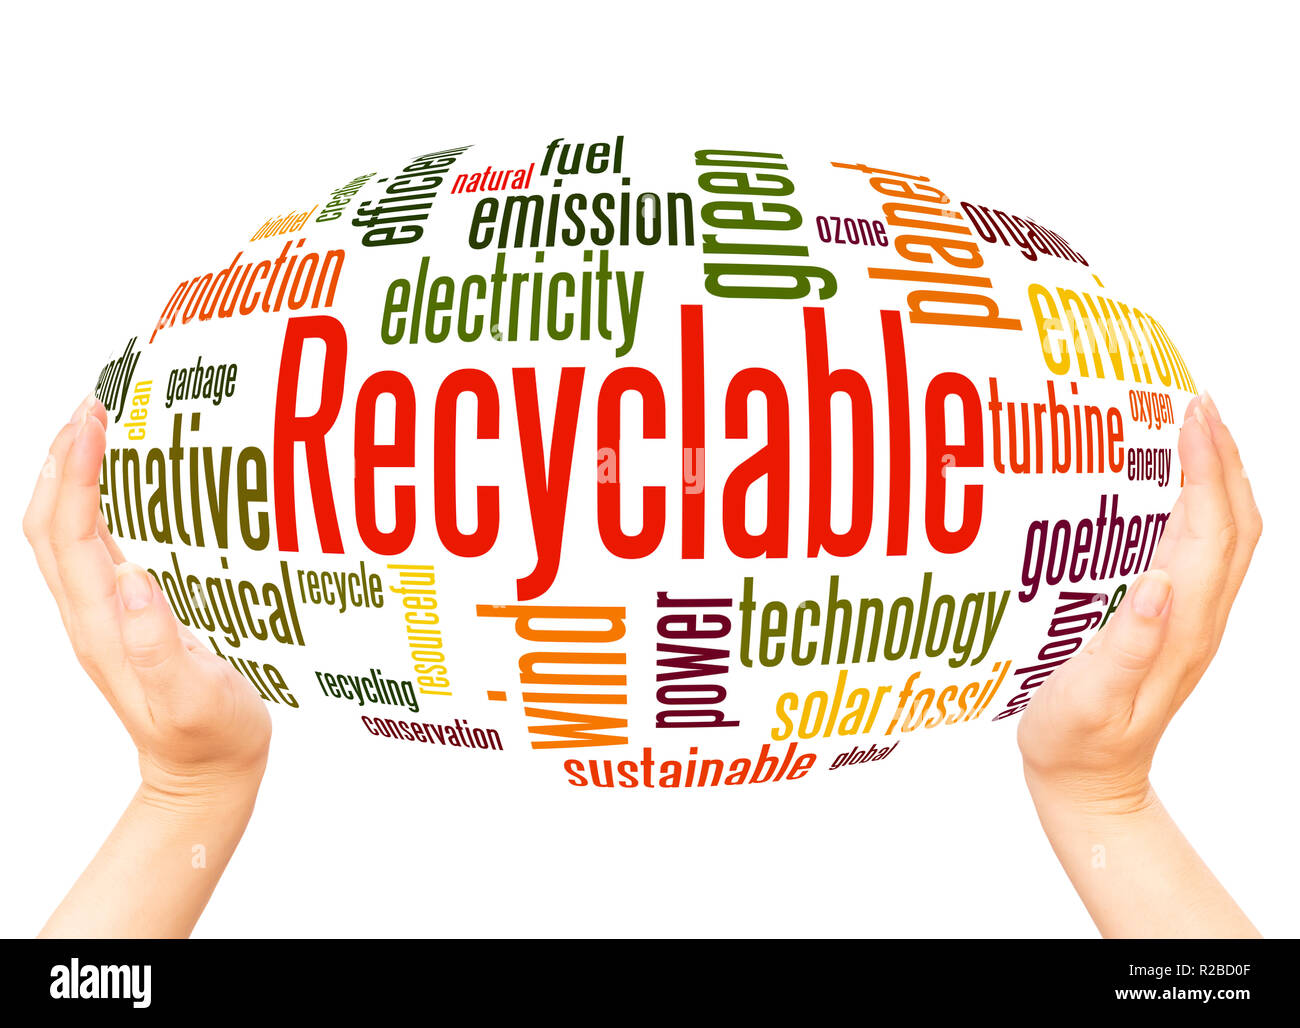 Recyclable word cloud hand sphere concept on white background. - Stock Image